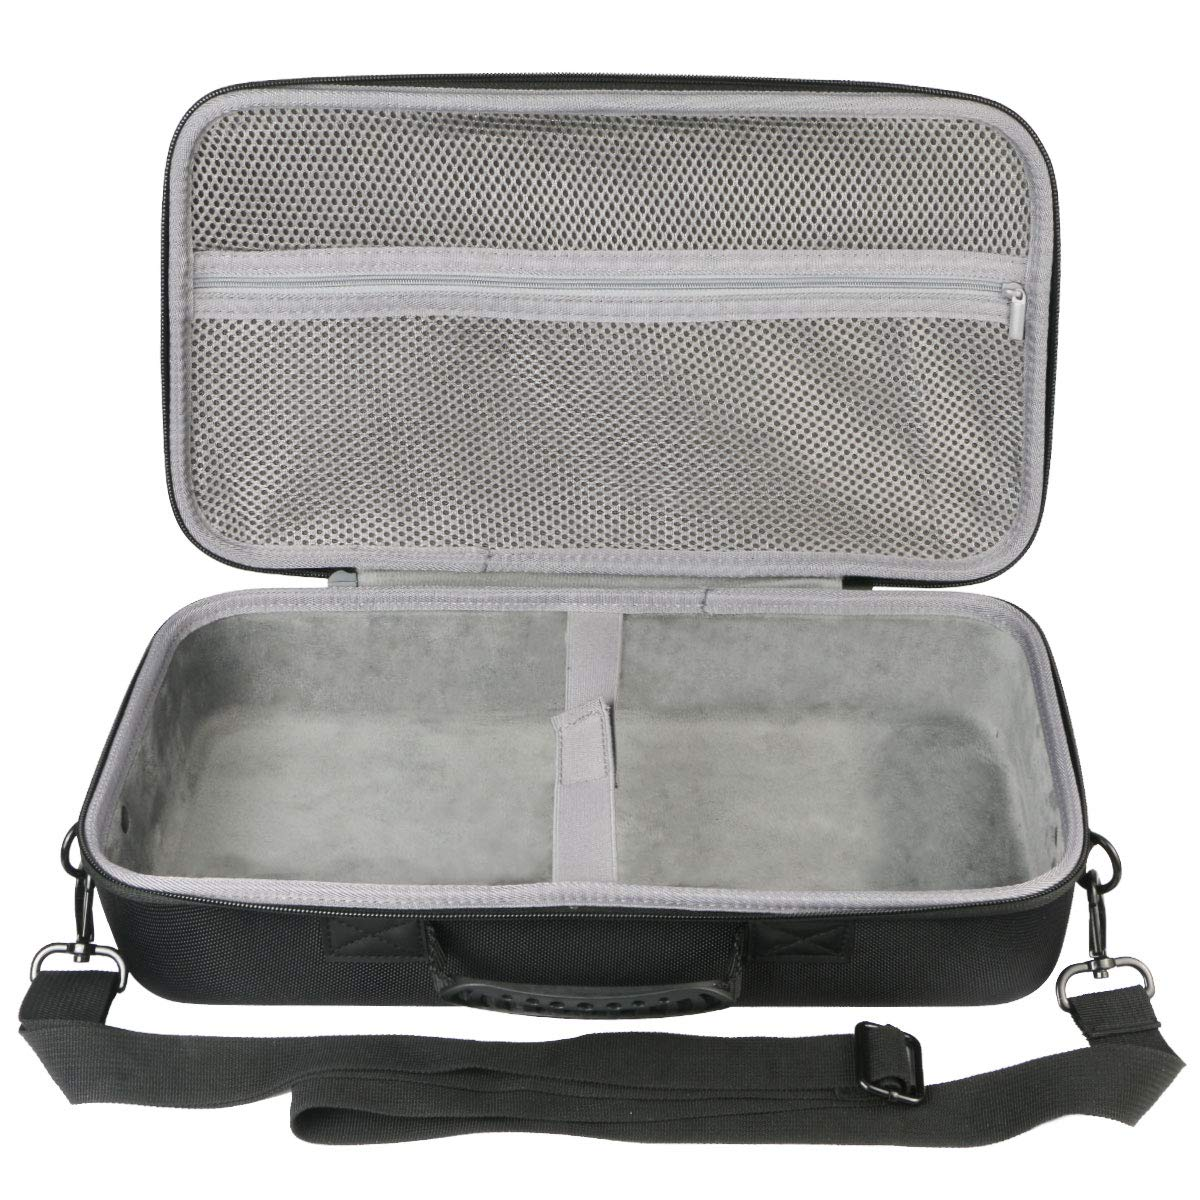 co2crea Hard Travel Case for HP OfficeJet 200 Portable Printer with Wireless Mobile Printing (CZ993A) by Co2Crea (Image #3)